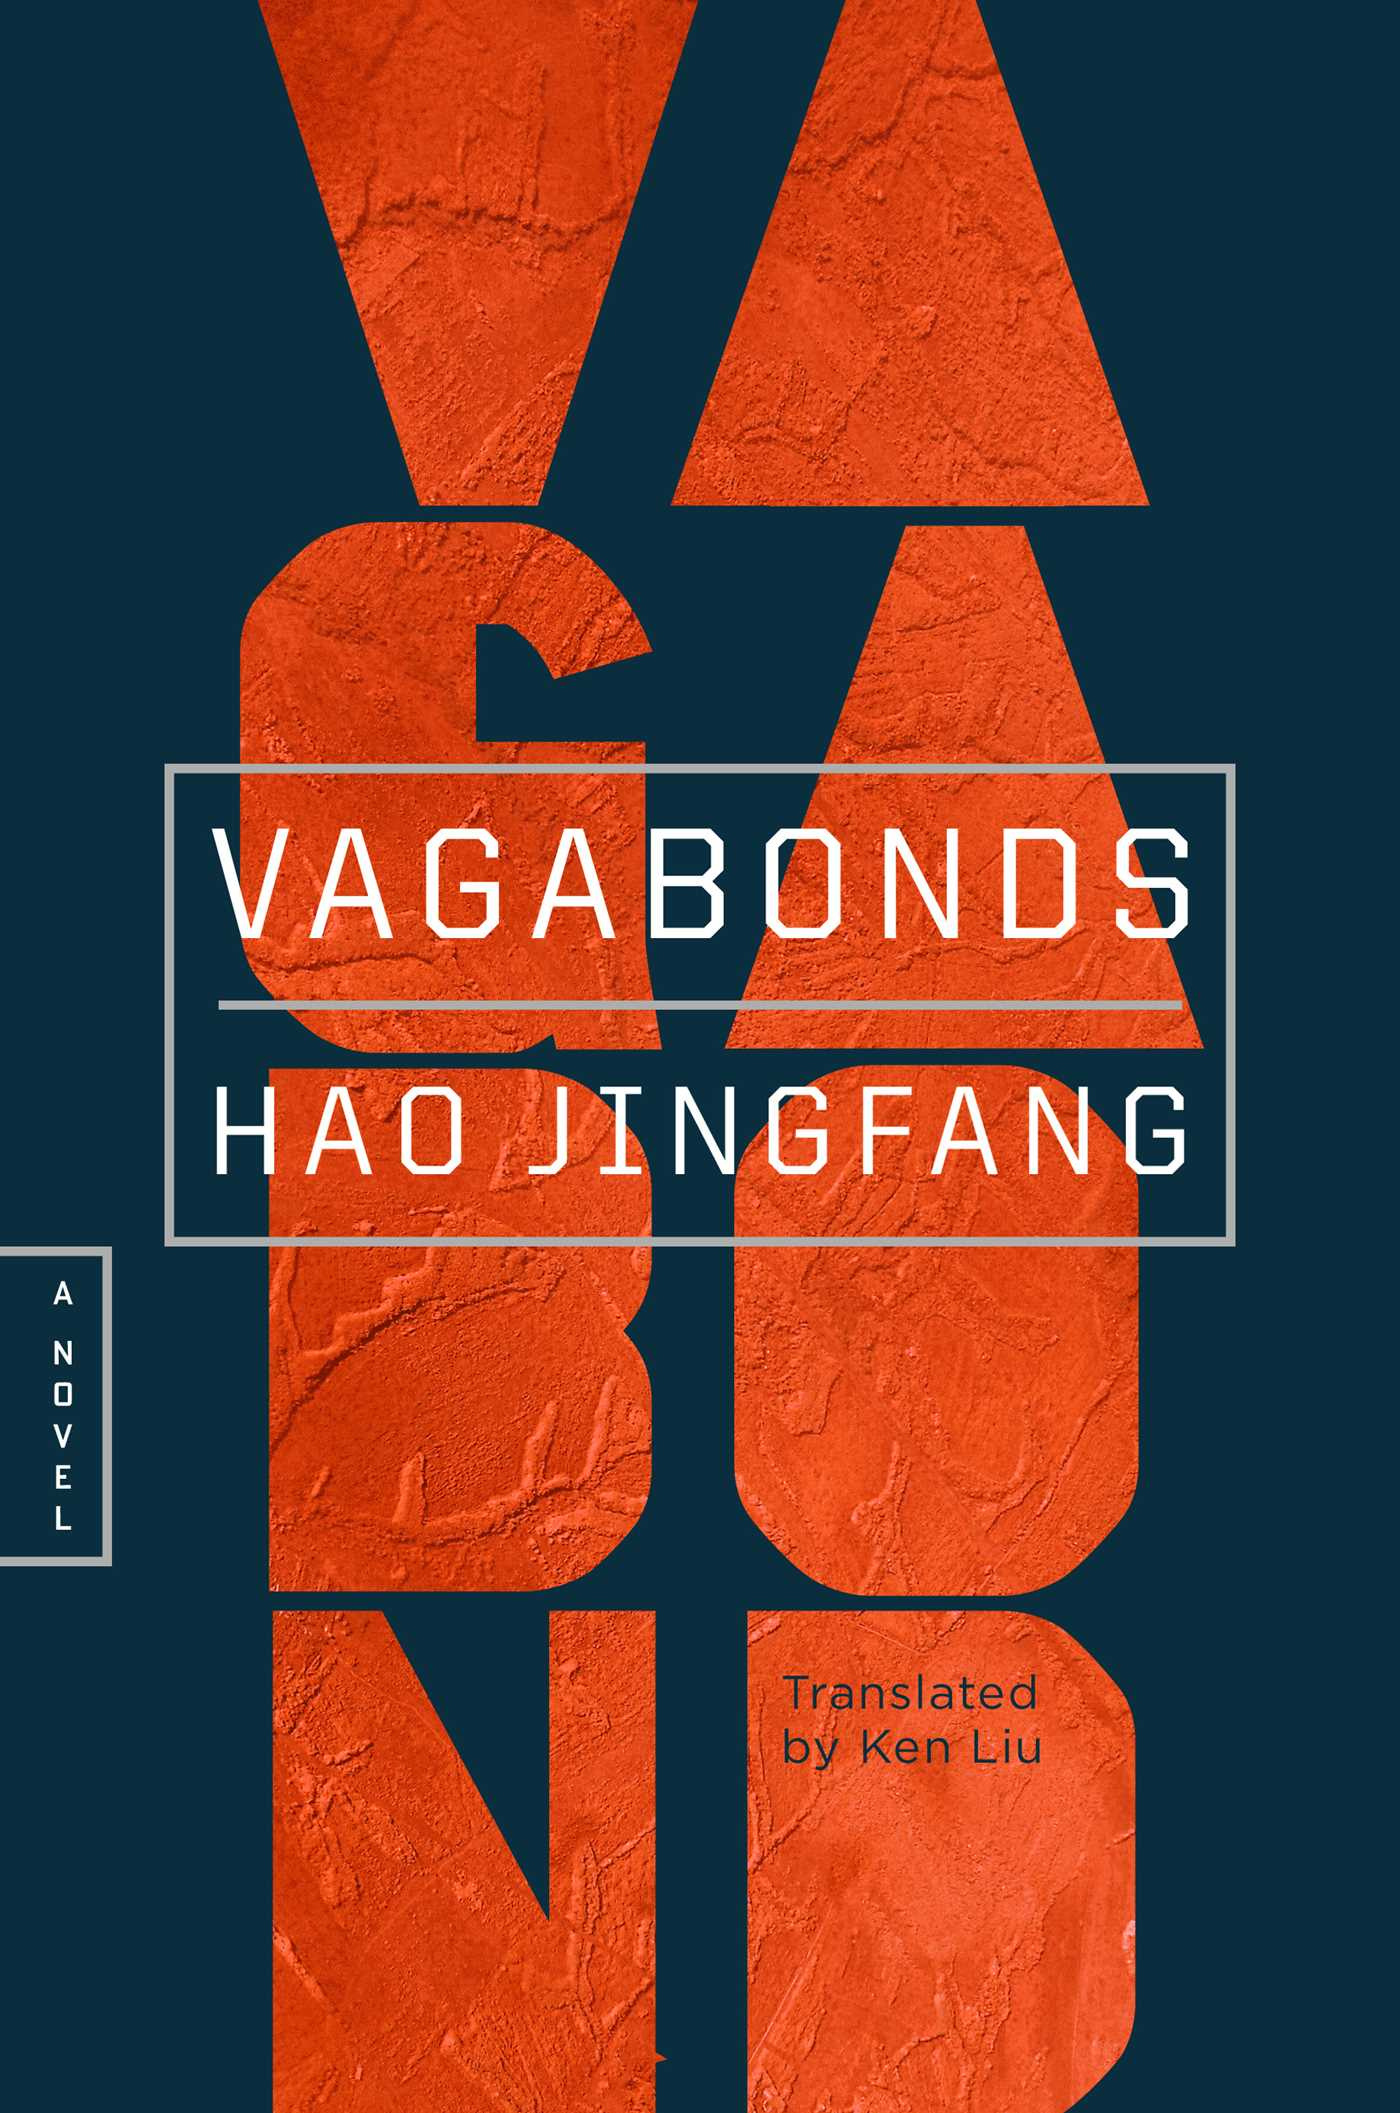 Vagabonds by Hao Jingfang #BookReview